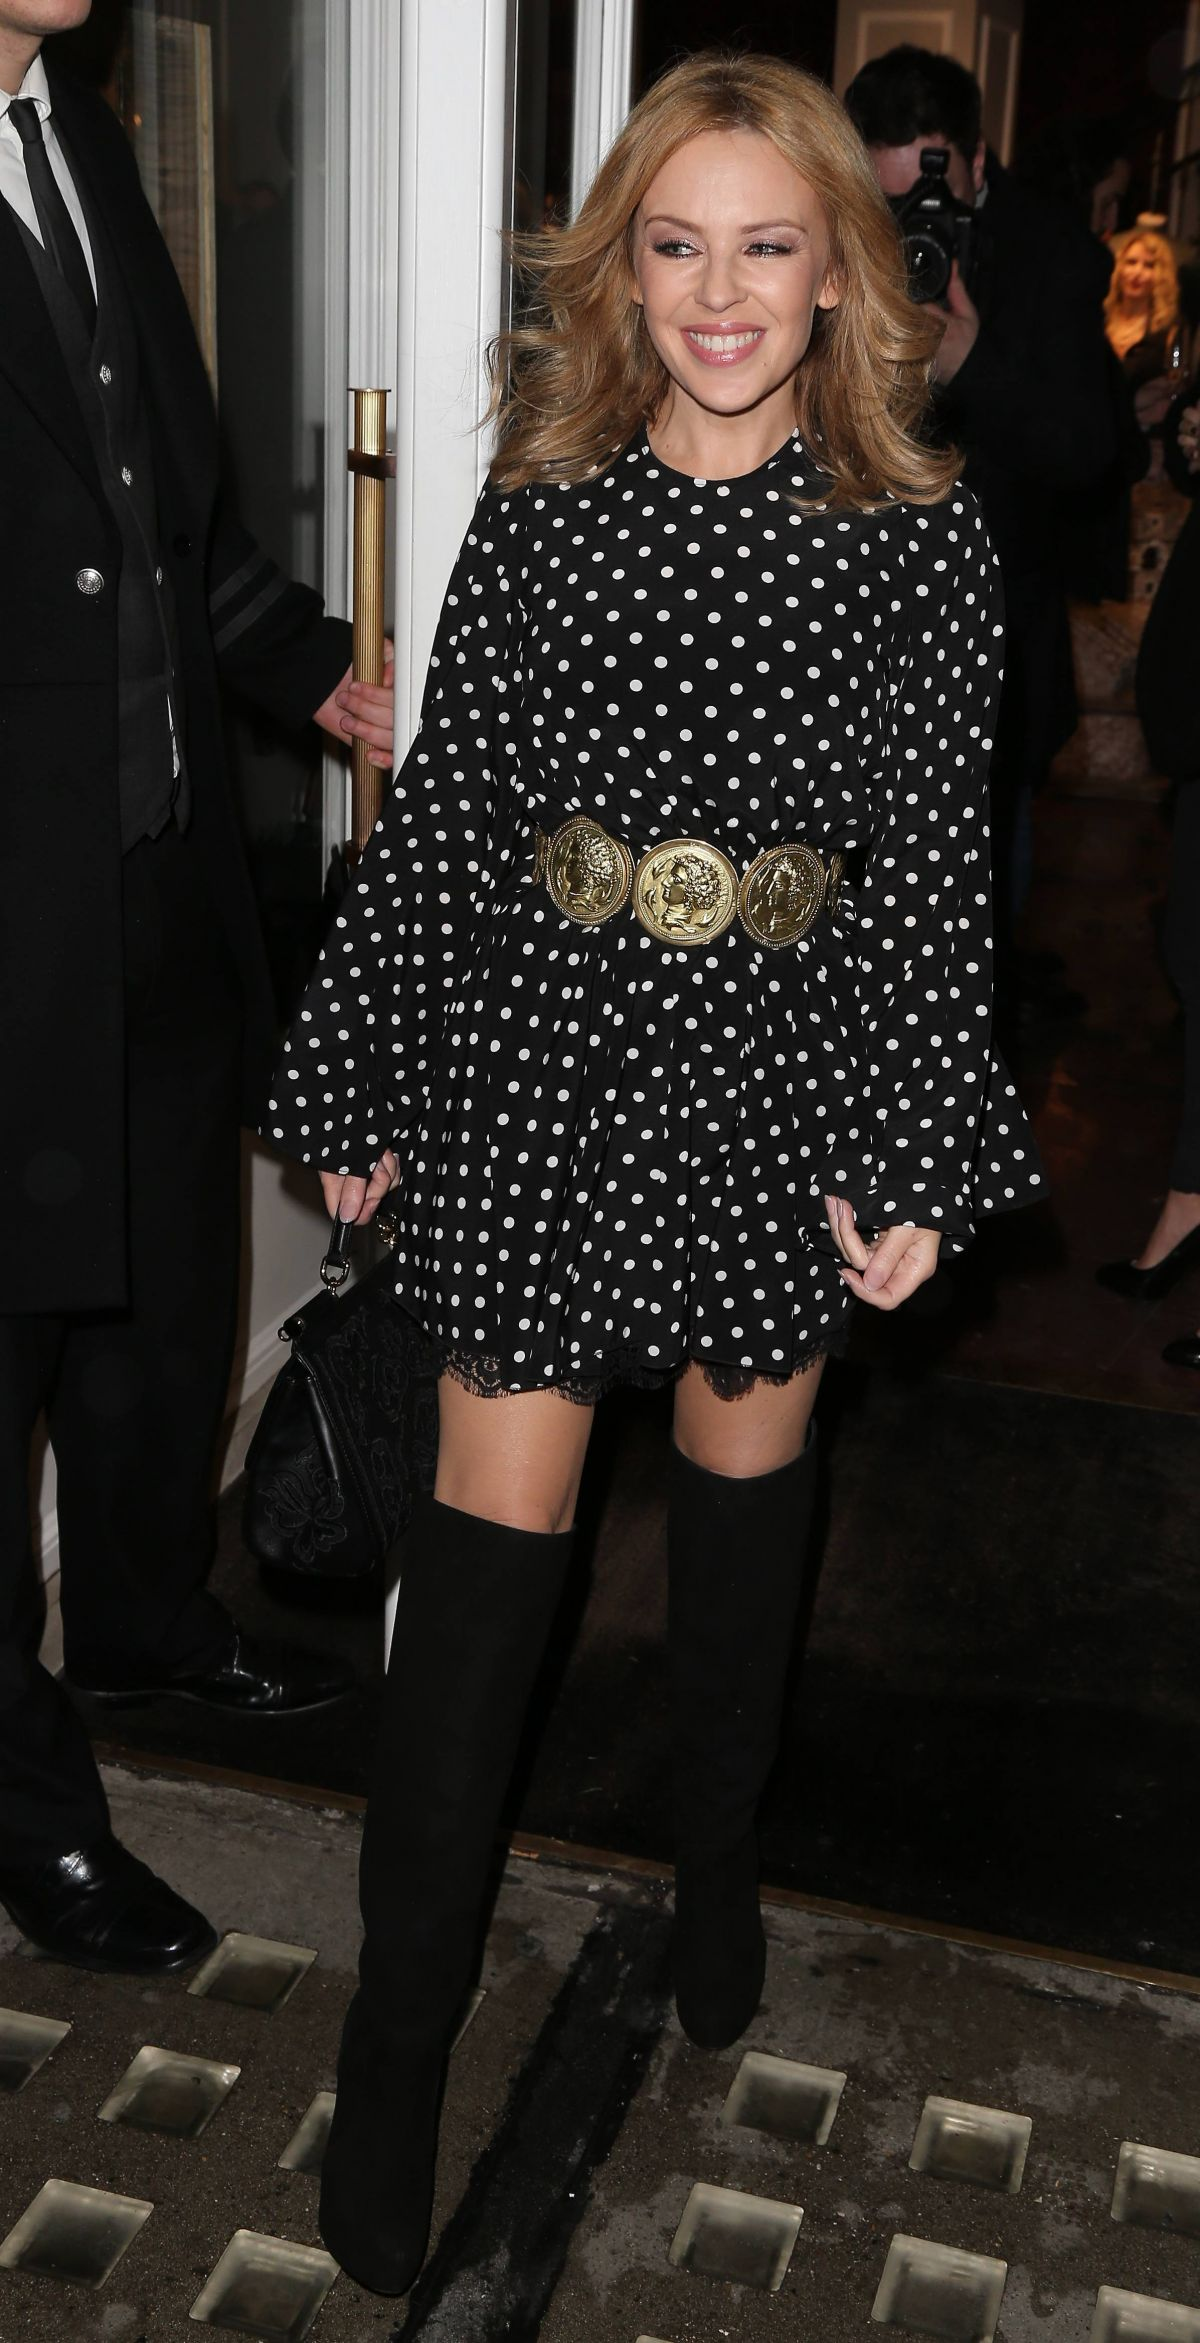 KYLIE MINOGUE Leaving Dolce And Gabbana In London